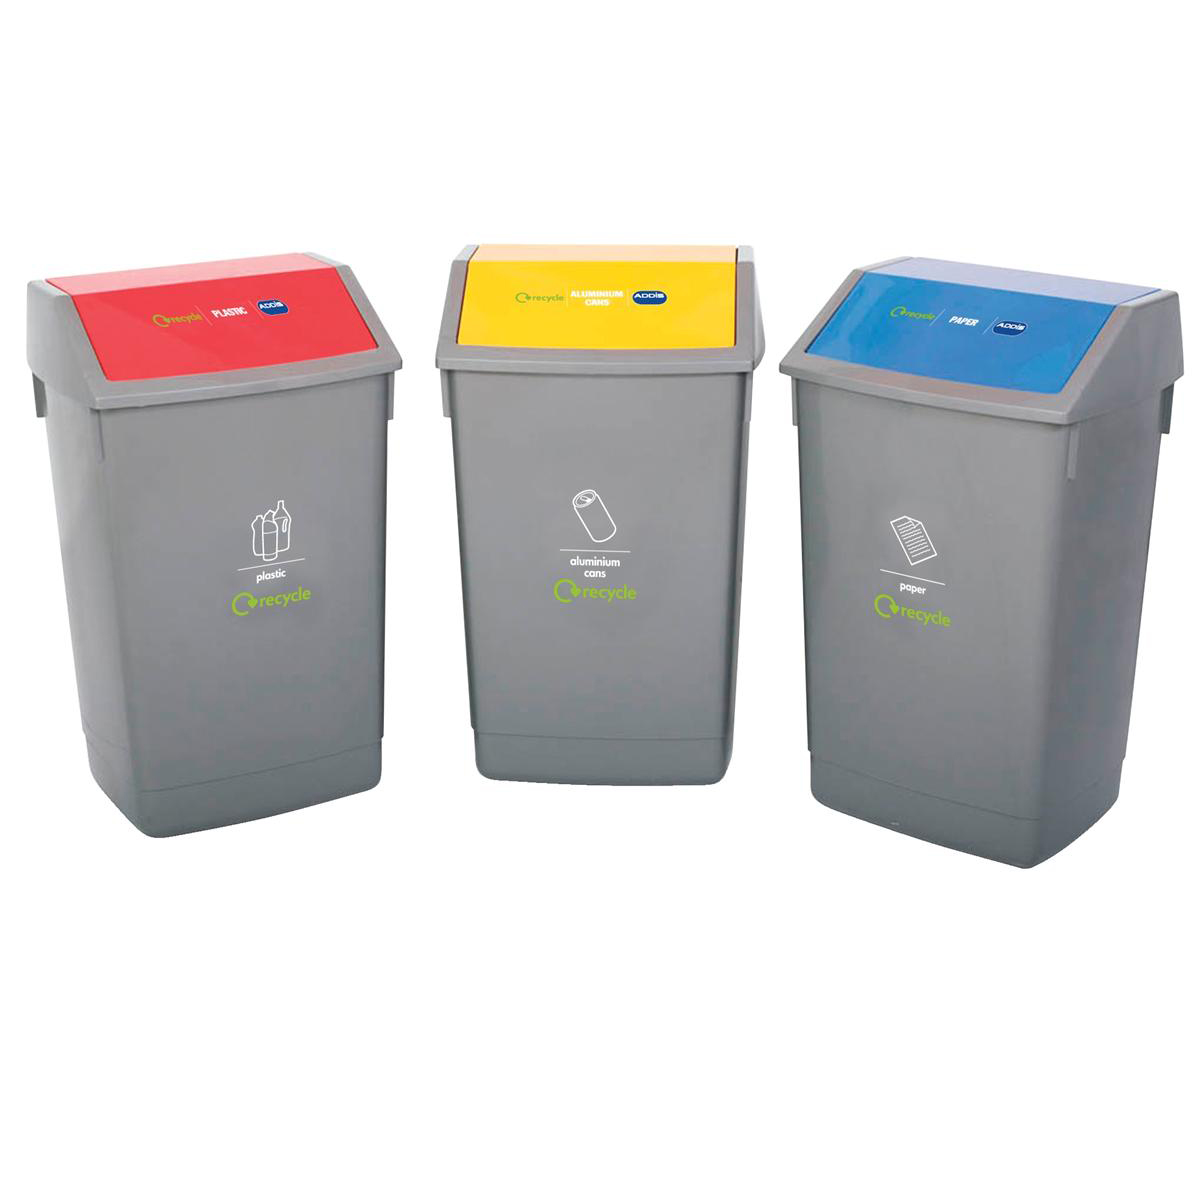 Recycle Bin Kit 3x 60 Litre Bins with Colour Coded Lids Flip Top Ref 505576 Pack 3